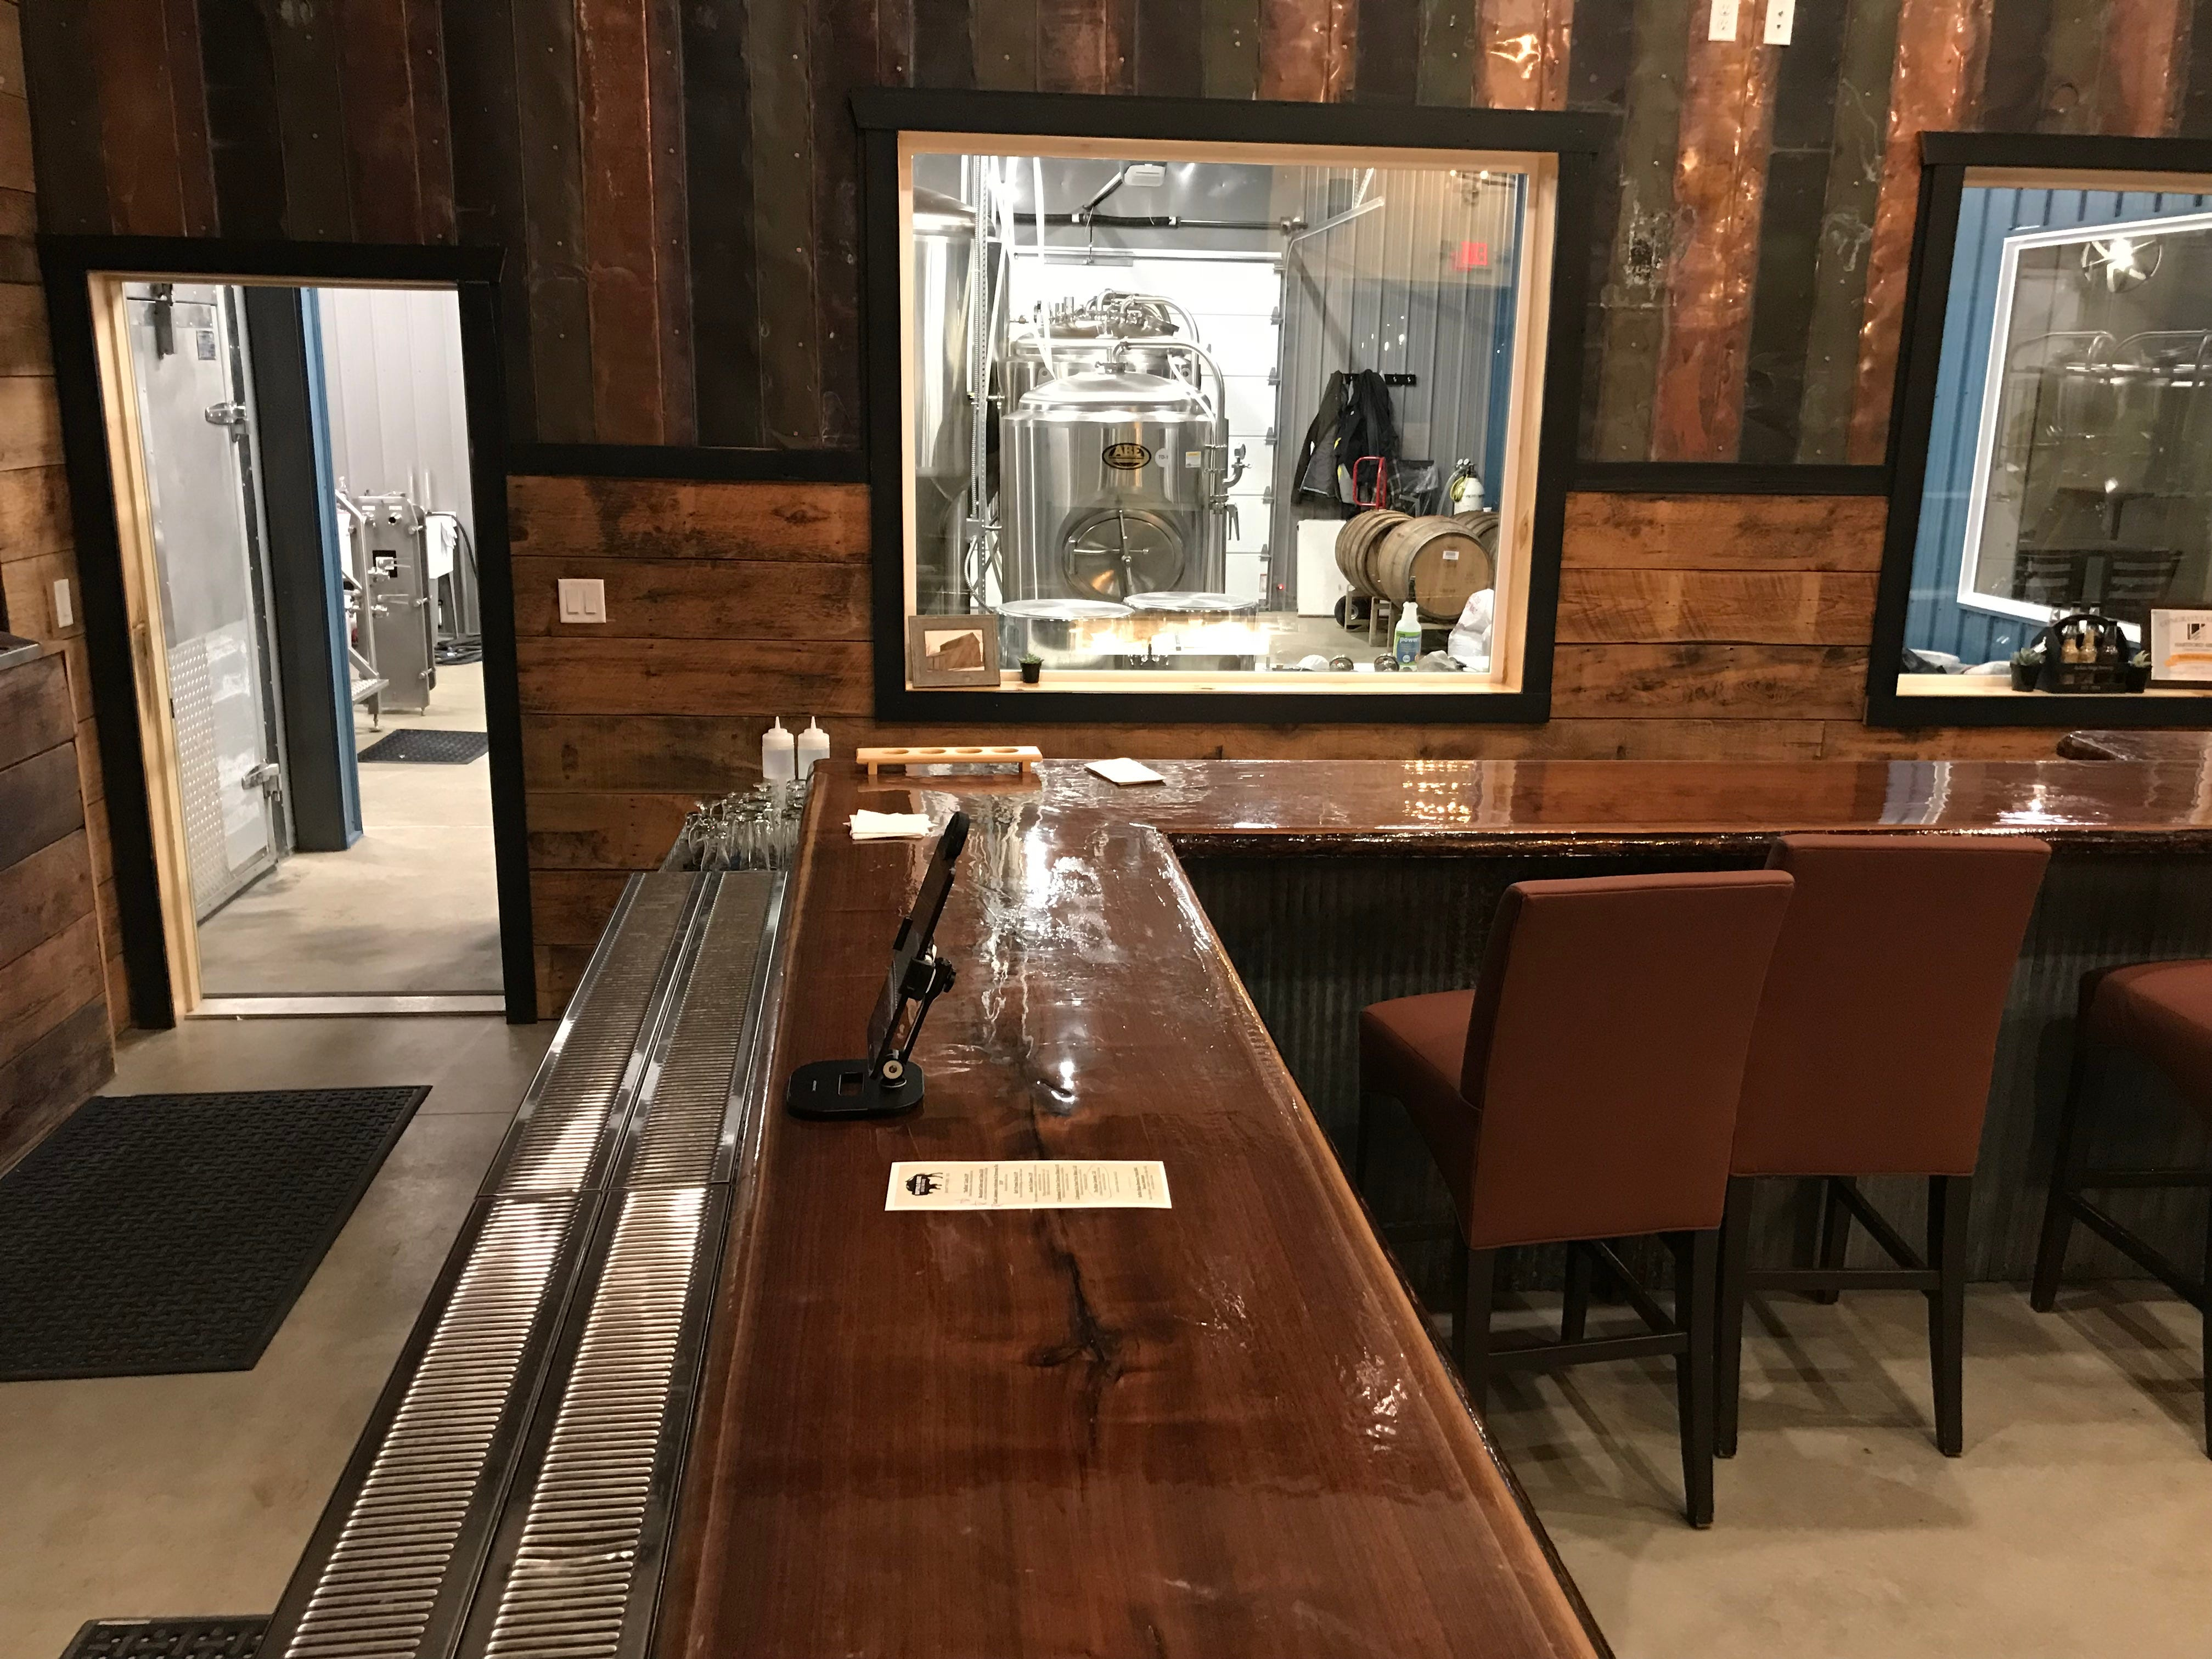 Buffalo Ridge Brewing opened Nov. 10 in downtown Hartford. City officials hope it will spur economic development downtown.